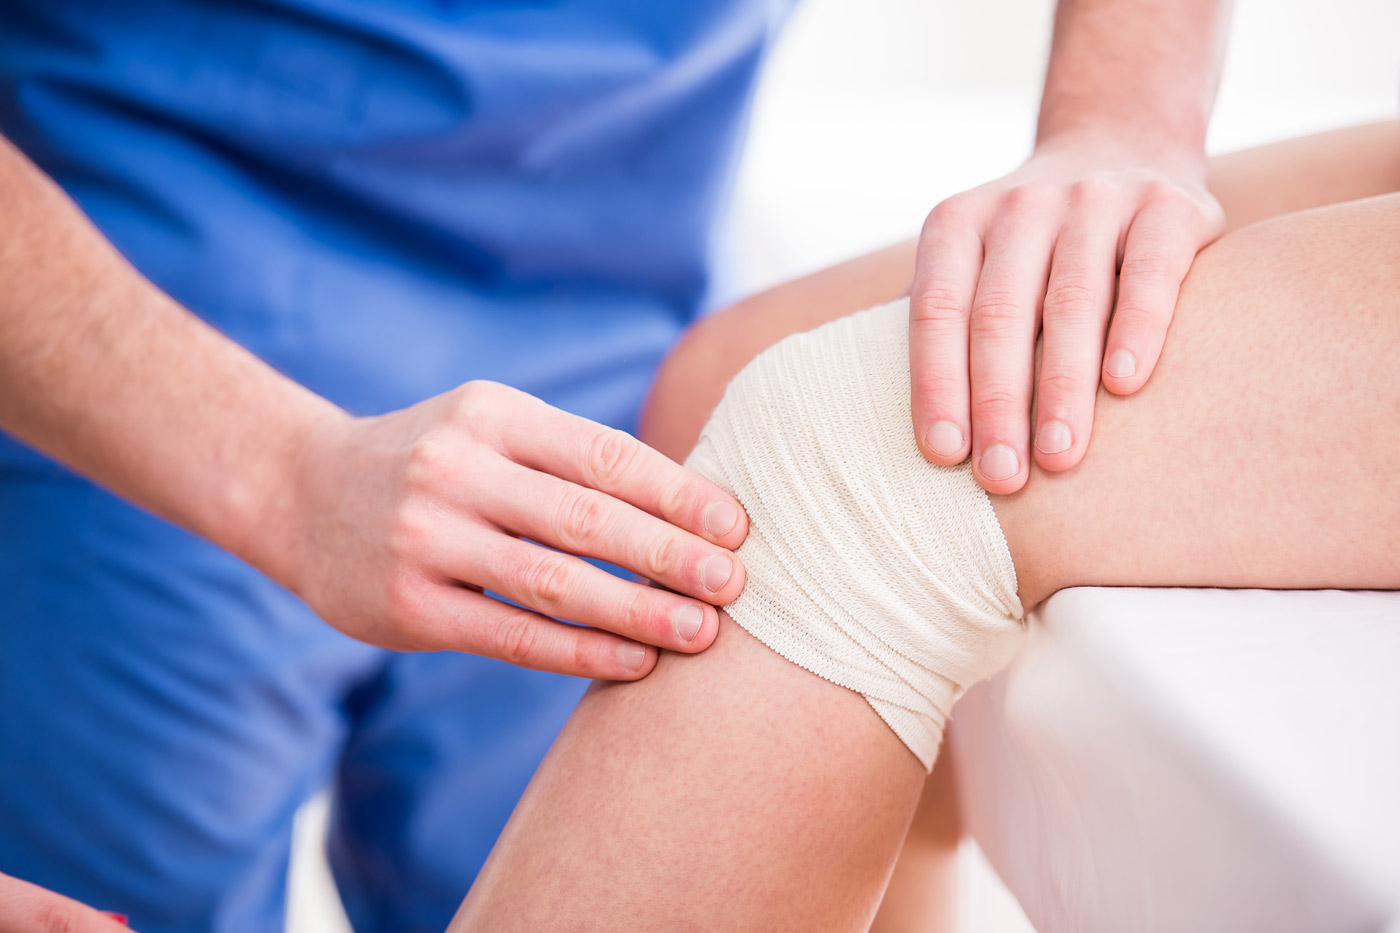 Prolozone – Non-surgical joint repair